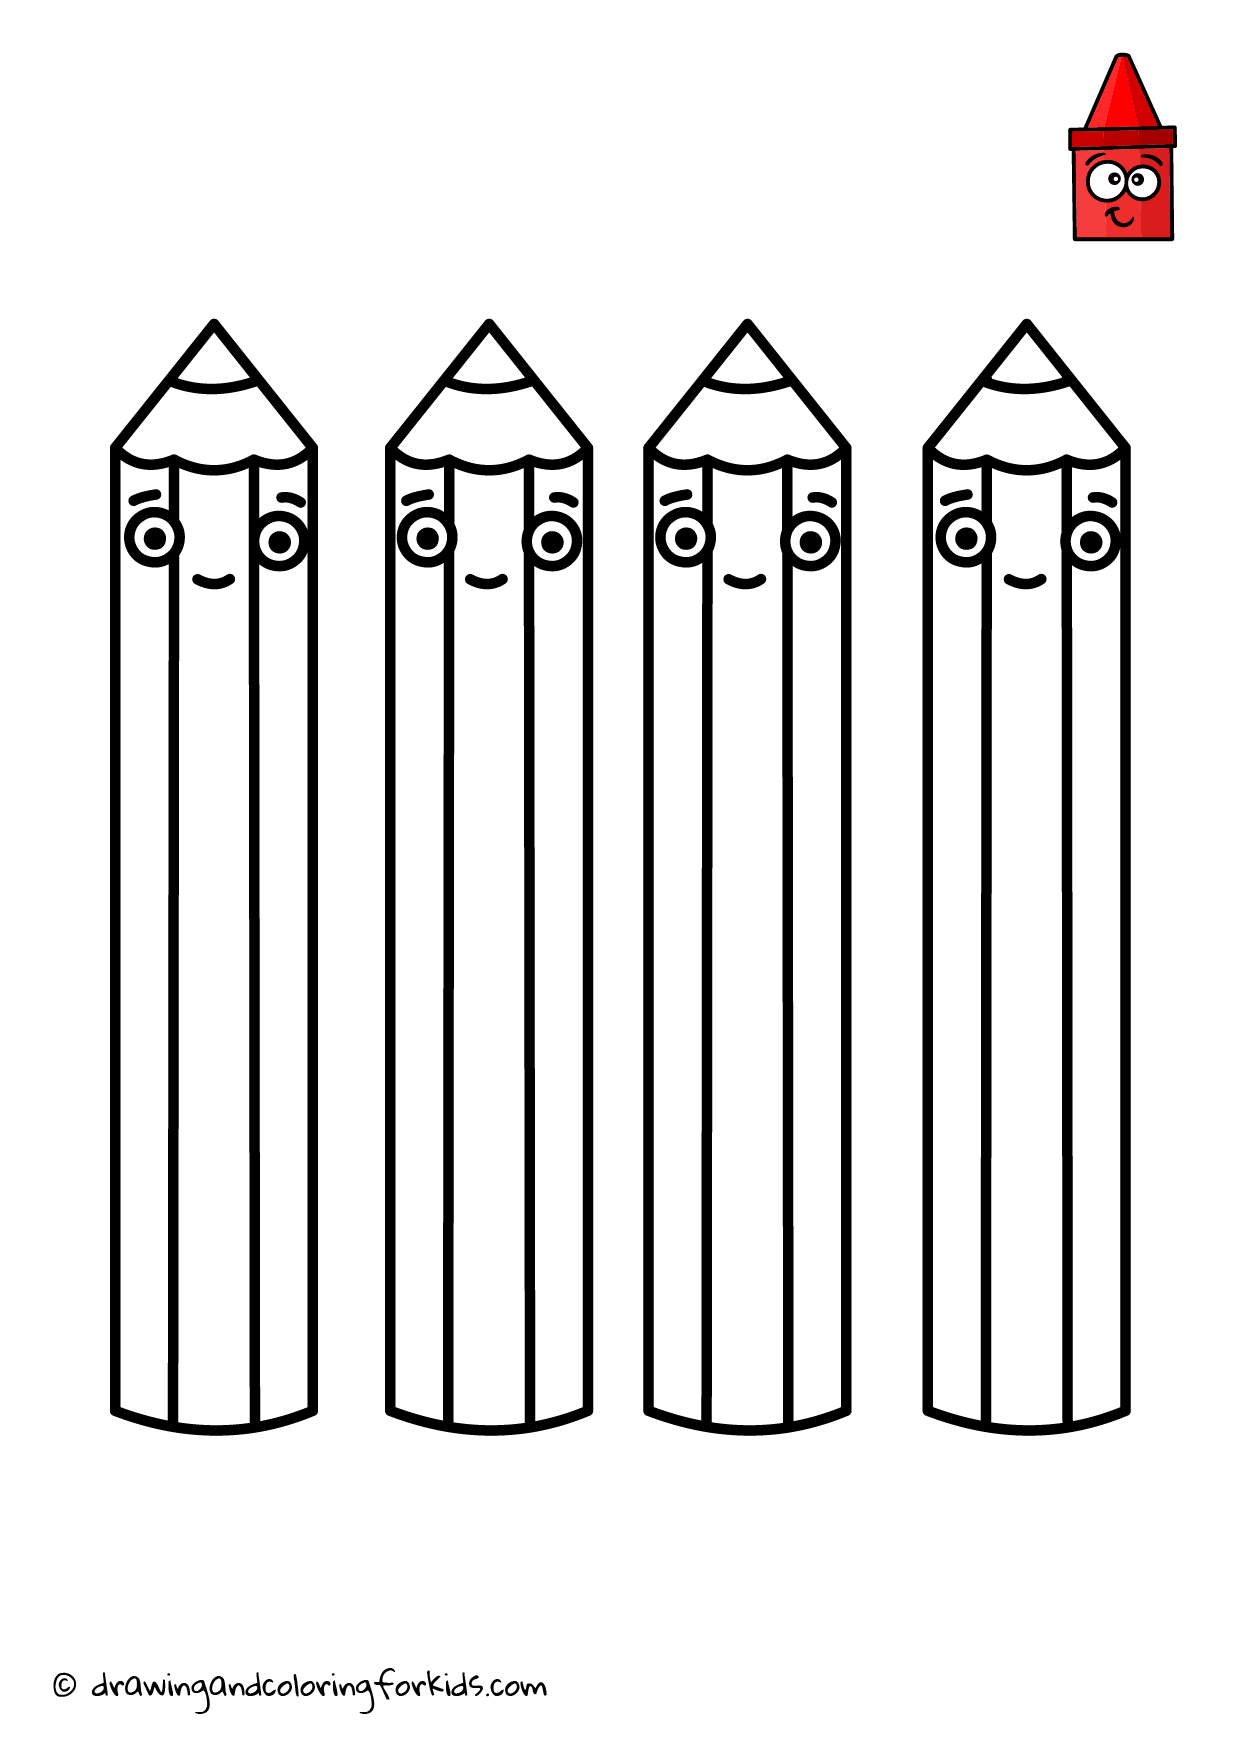 Drawing Crayon Pencils Coloring Pages Colorful Crayons Drawing And Coloring For Kids